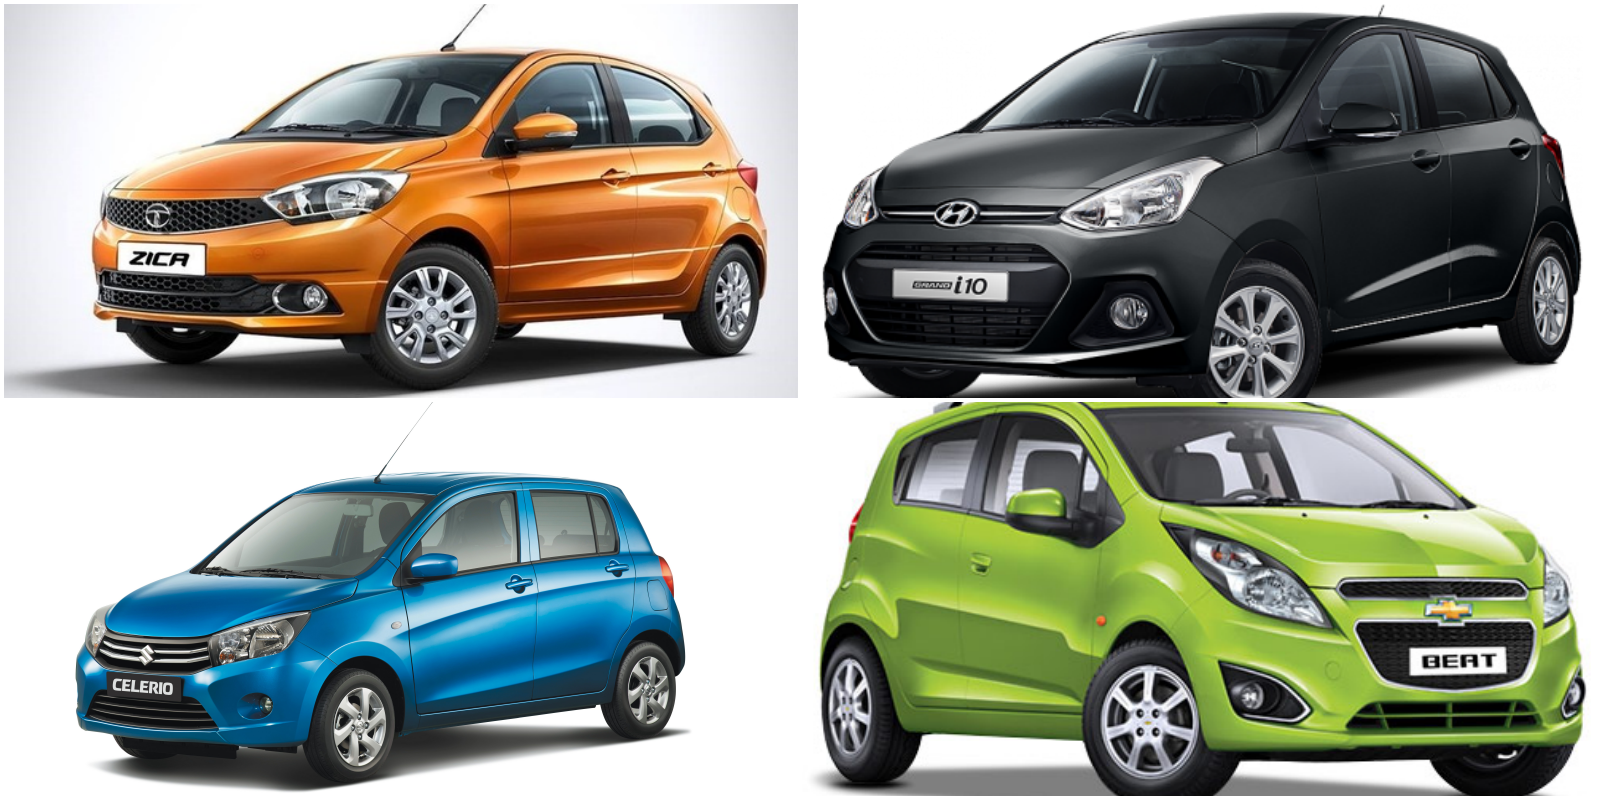 Chevrolet Beat Vs. Tata Zica Vs. Maruti Celerio Vs. Hyundai Grand i10